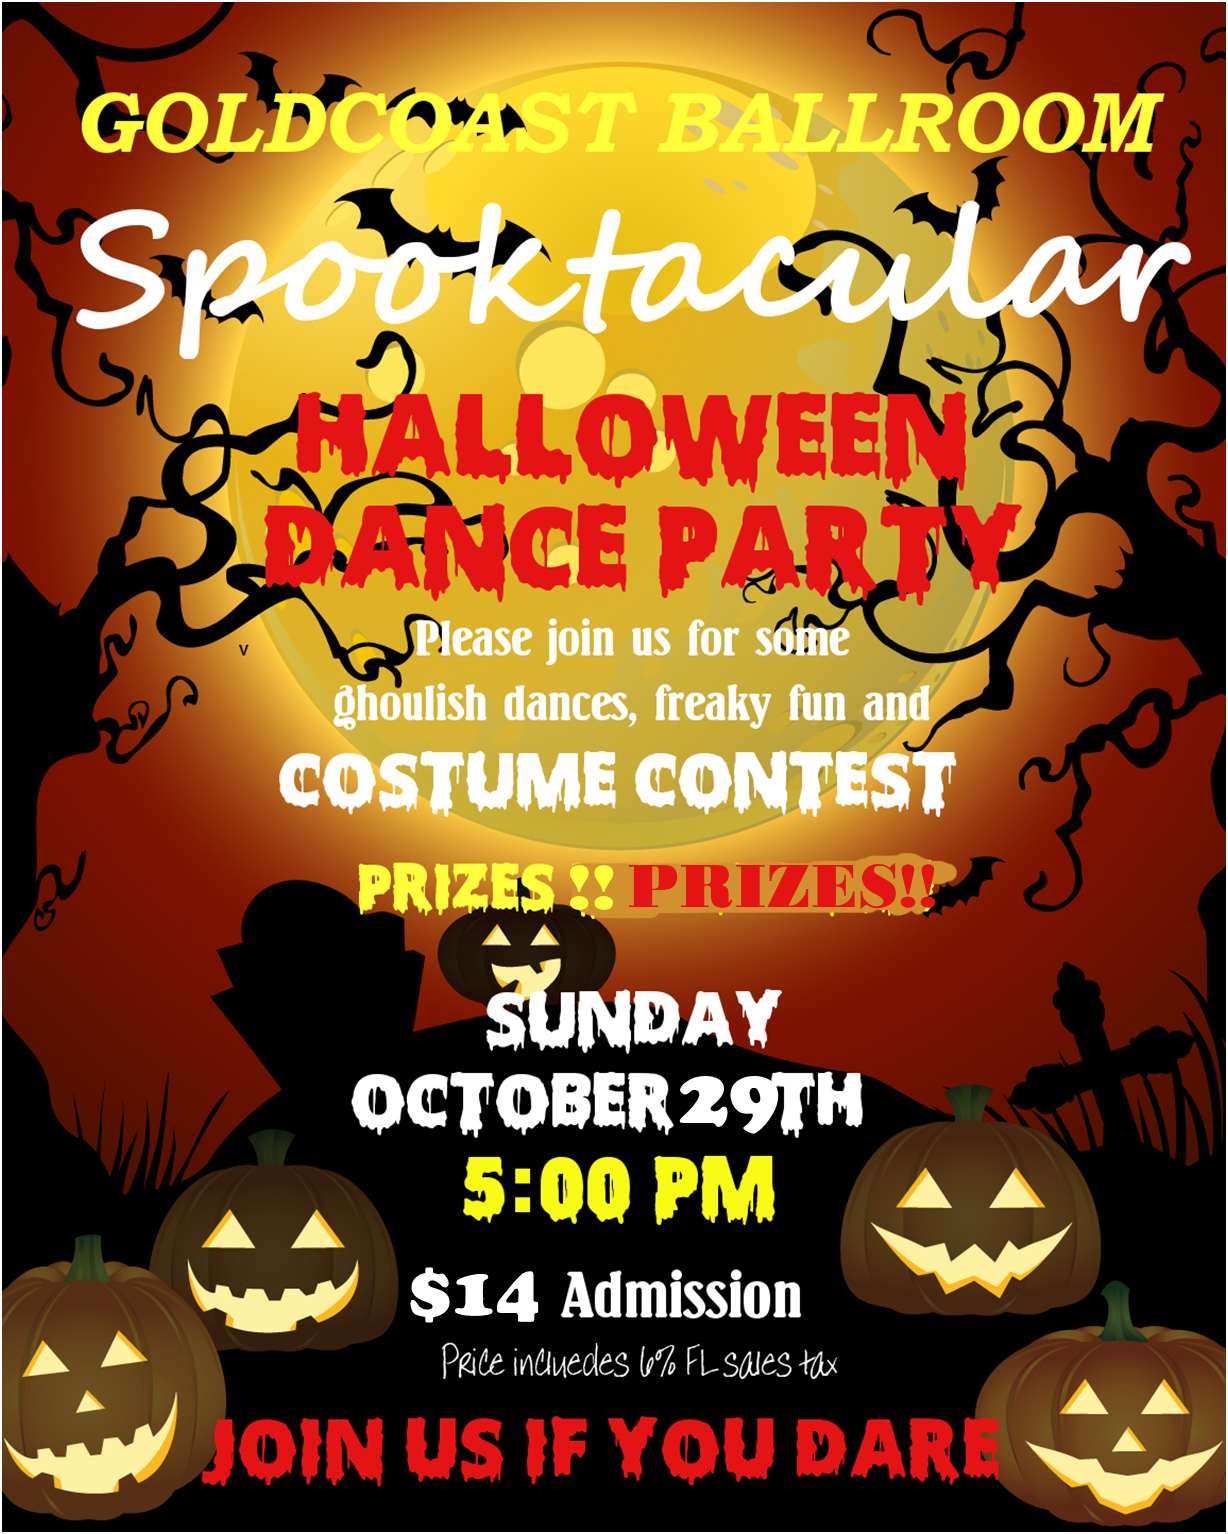 Spooktacular Halloween Party & Costume Contest!! - Sunday, October 29, 2017 at Goldcoast Ballroom!